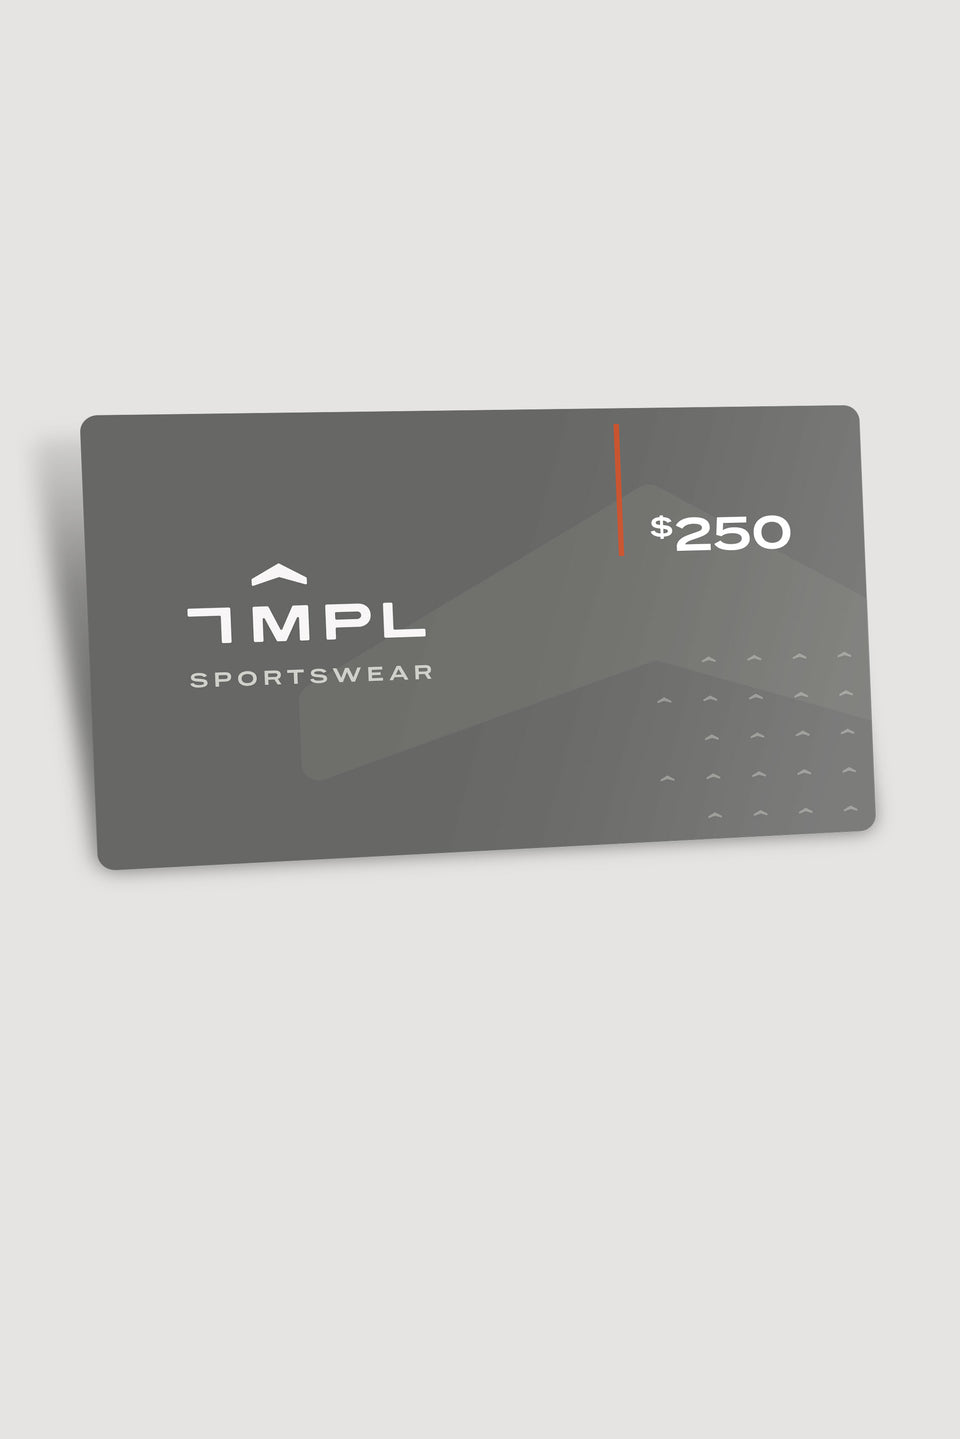 TMPL eGift Card